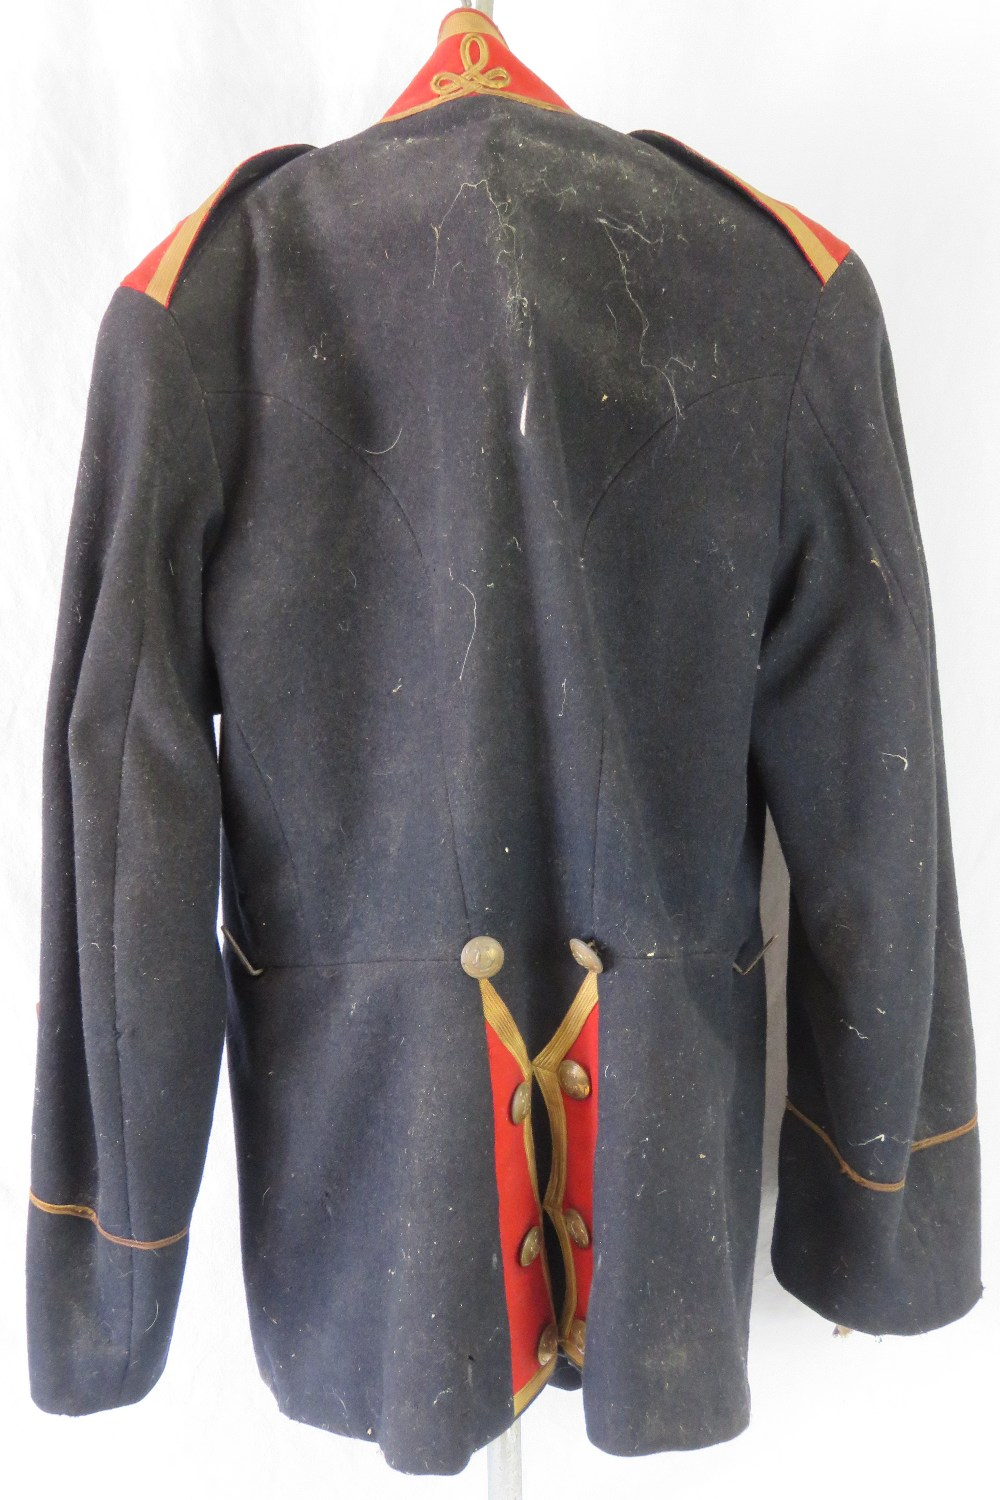 Lot 56 - A WWII US Military Band Corps parade tunic, in black with red details and original buttons.